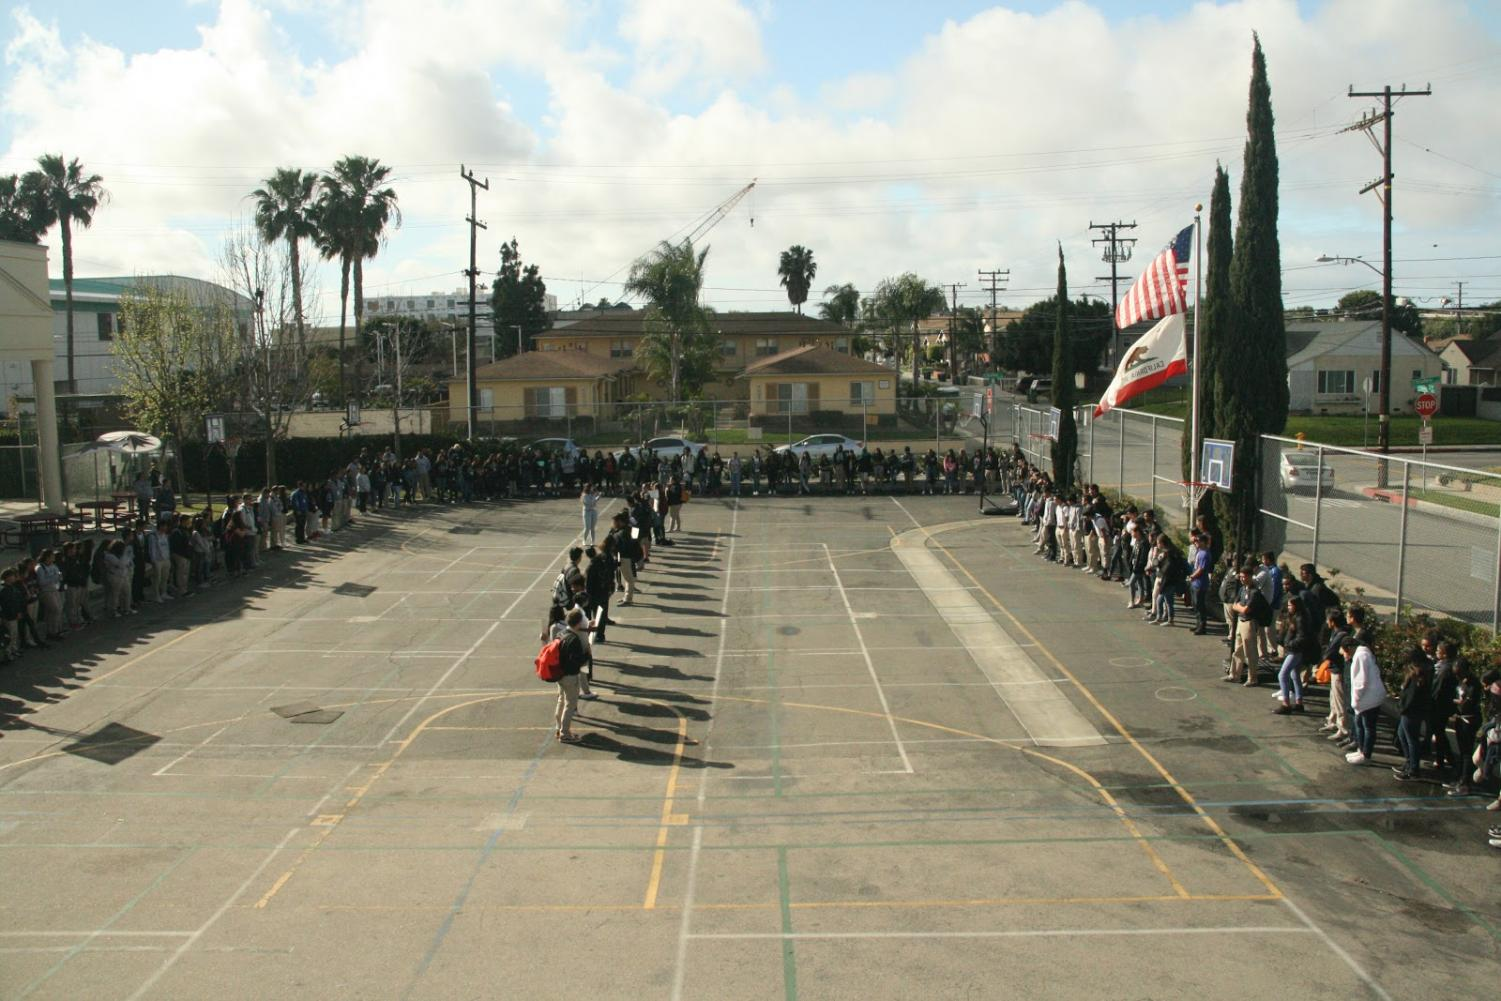 HMSA students and staff gathered on the blacktop for the memoriam.